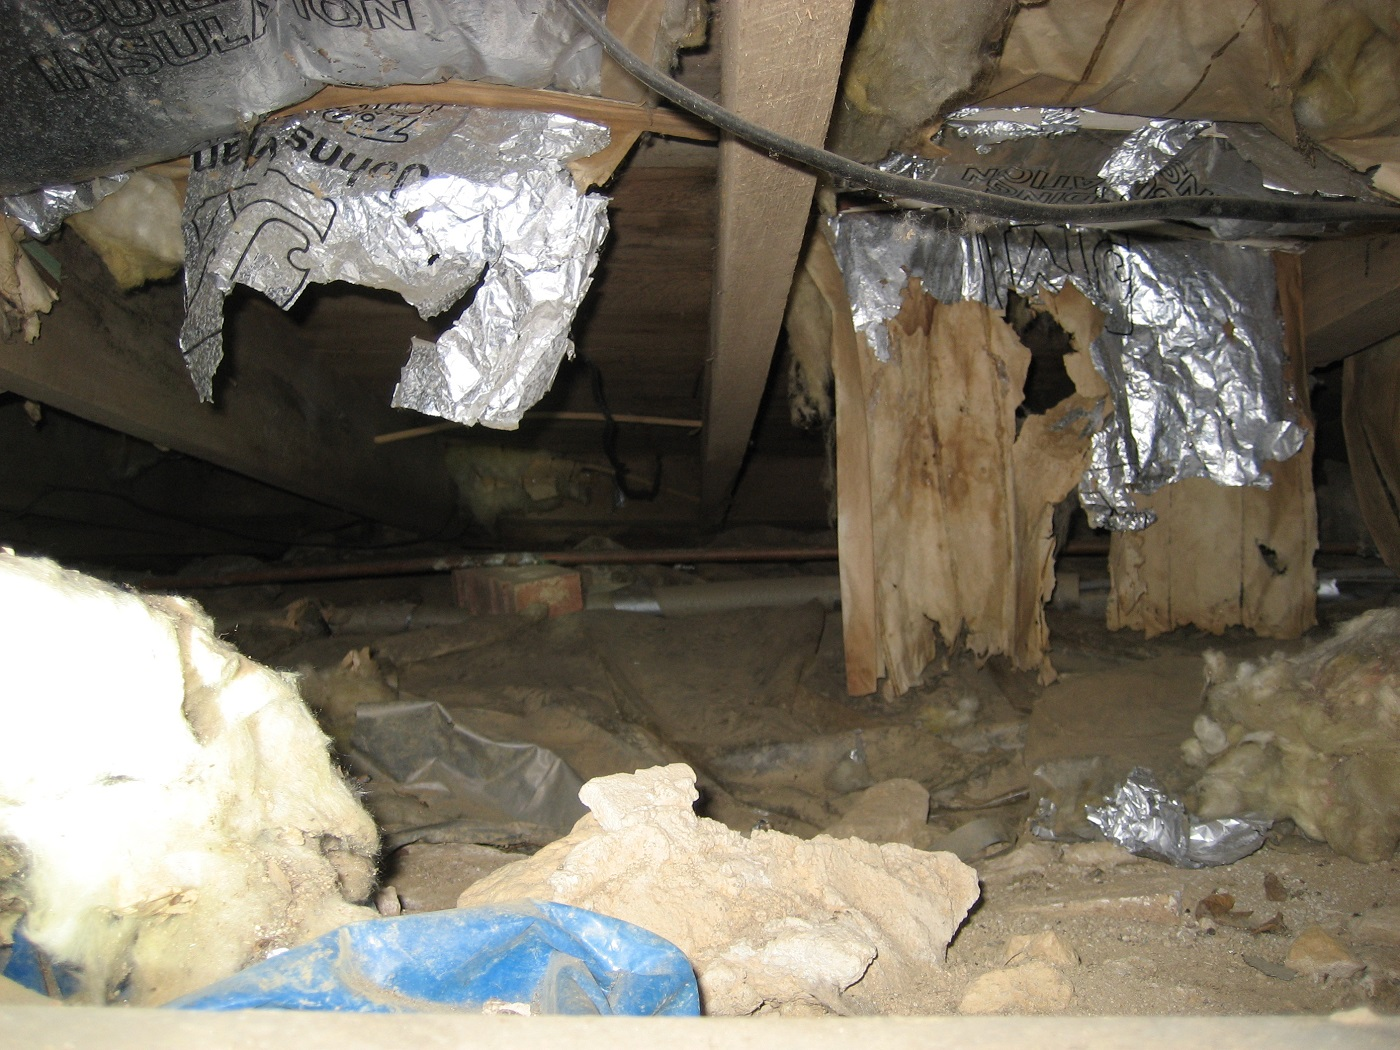 Typical crawlspace with old insulation hanging loose